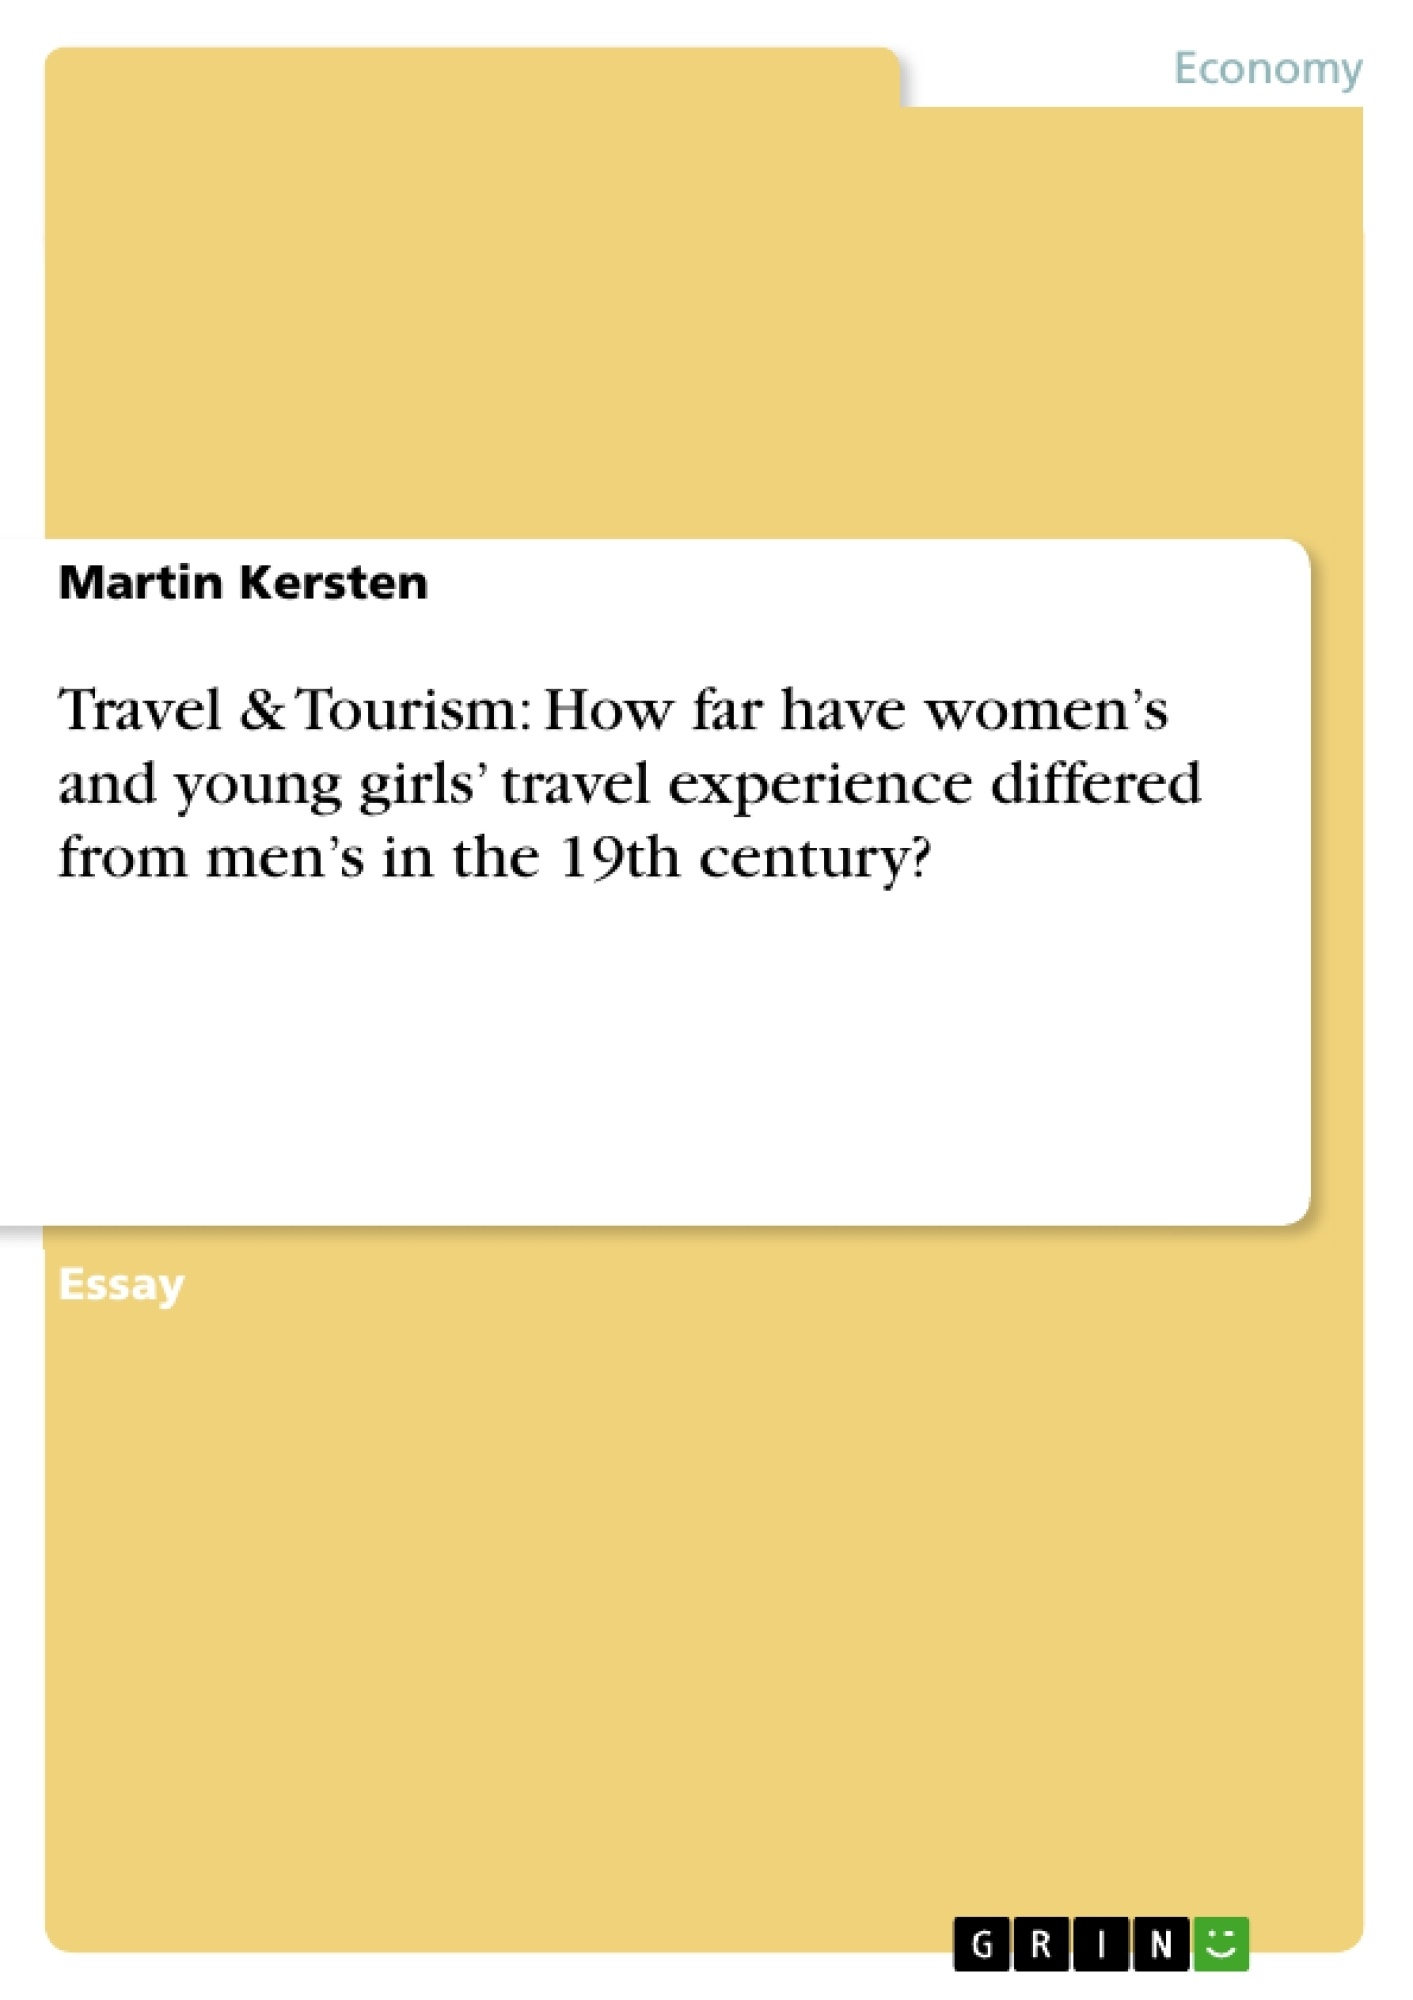 Title: Travel & Tourism: How far have women's and young girls' travel experience differed from men's in the 19th century?